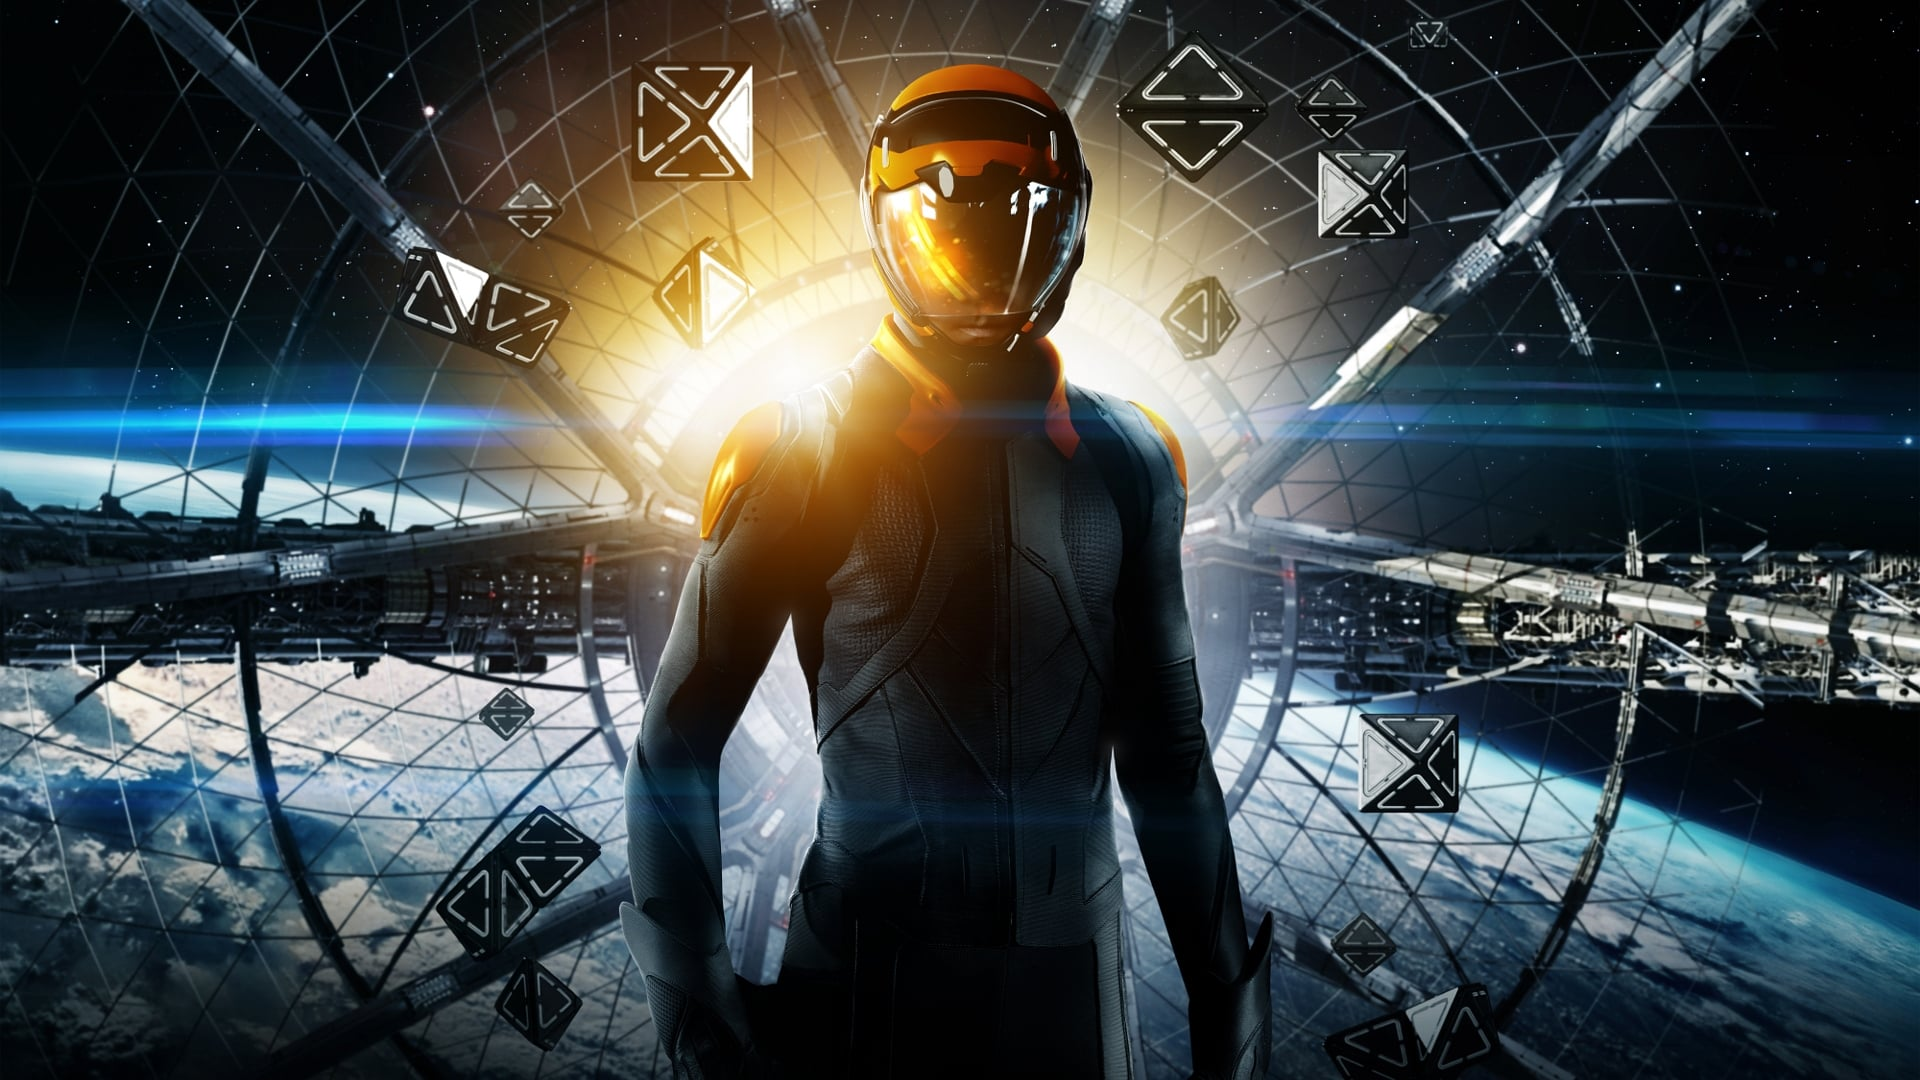 Ender's Game (2013) Wallpaper 1